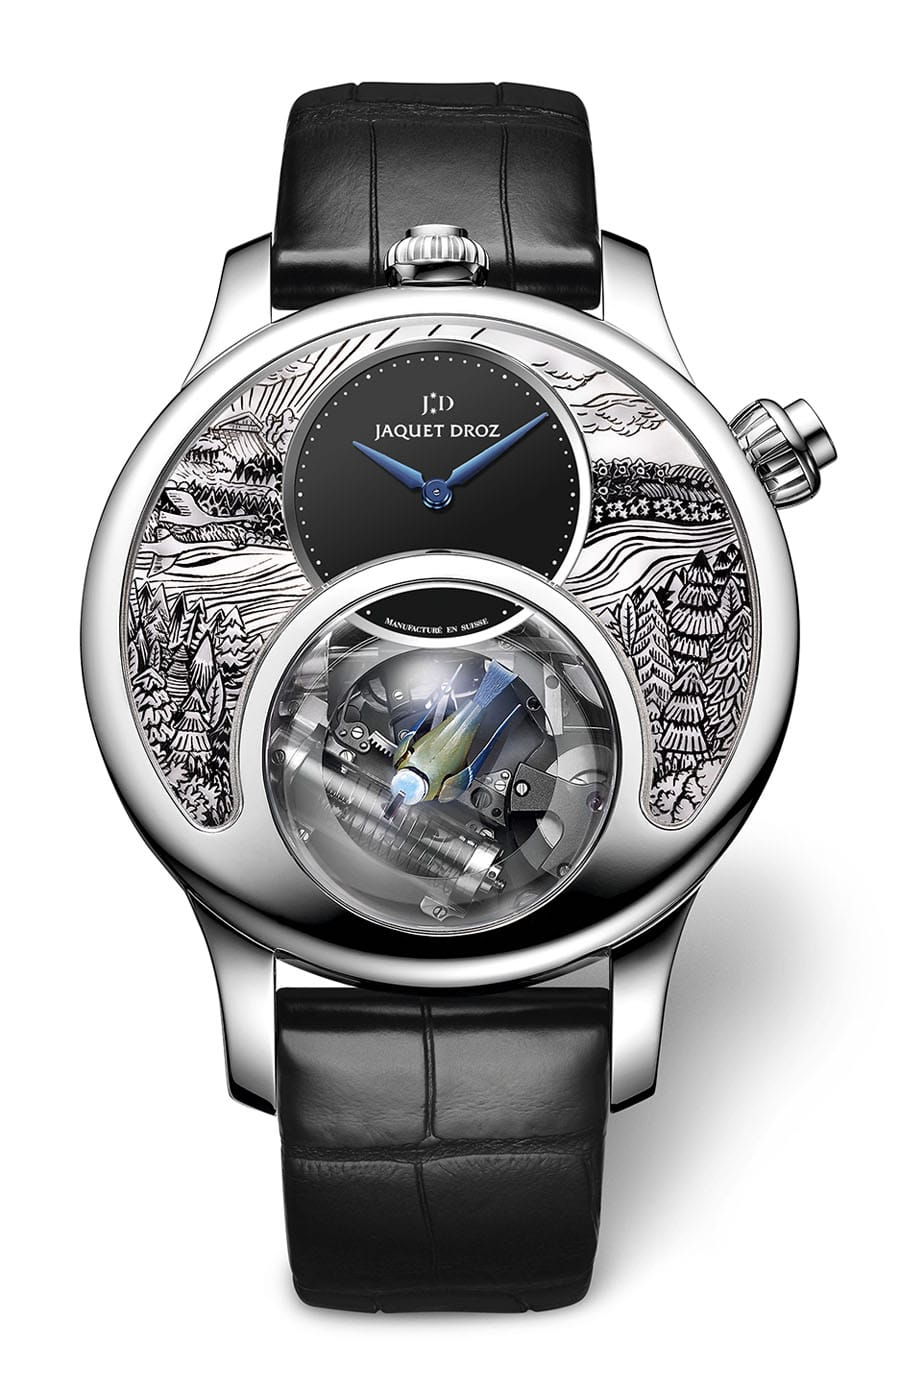 Jaquet Droz The Charming Bird